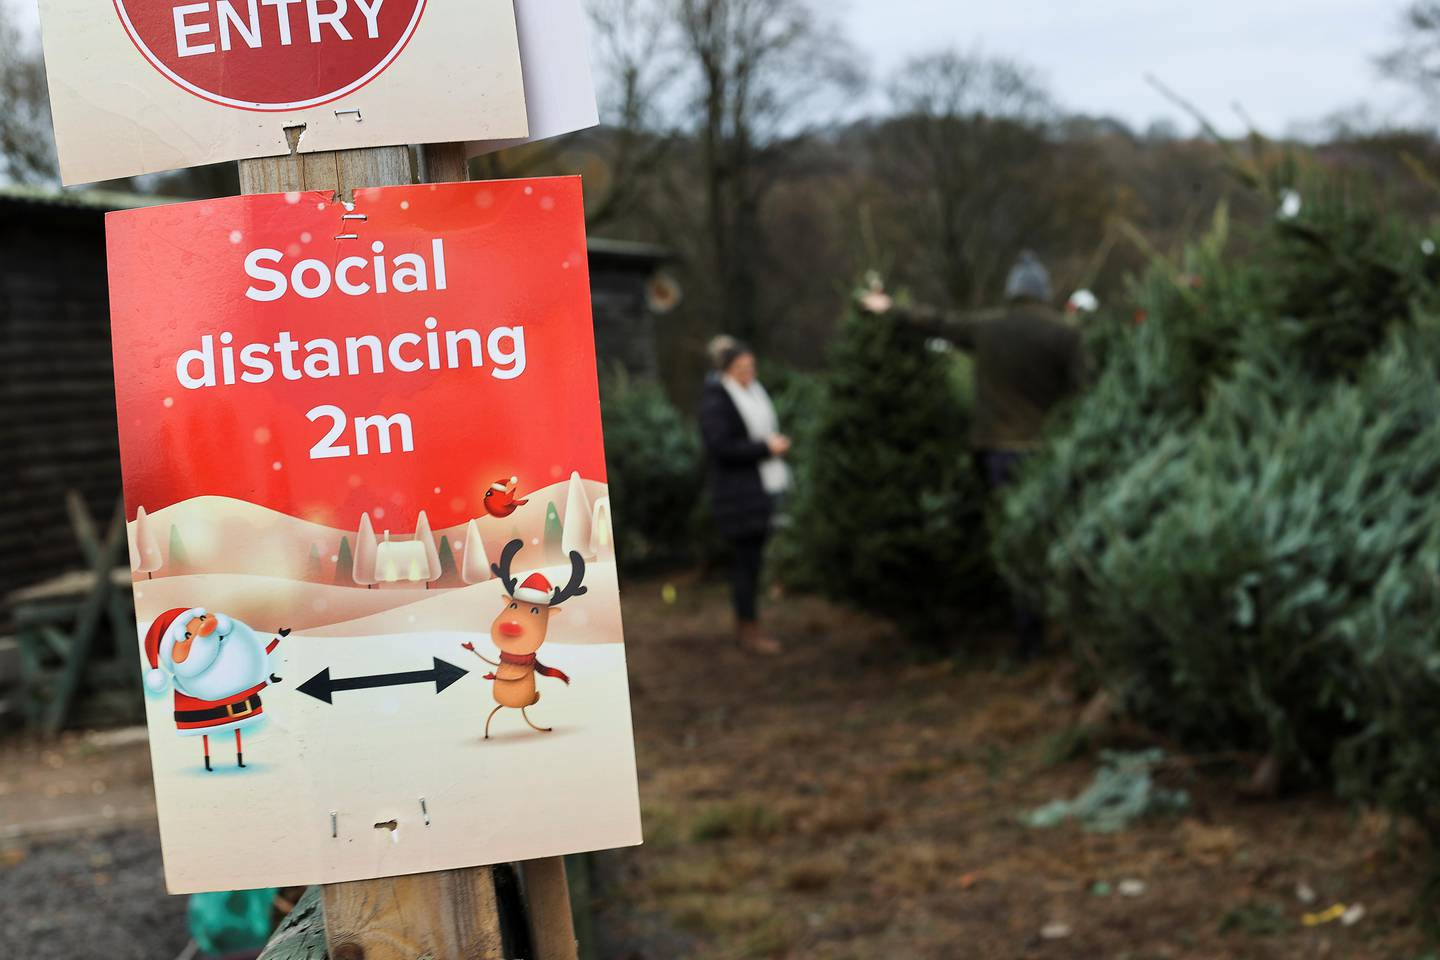 A social distancing sign is pictured as people visit a Christmas Tree Farm, amidst the outbreak of the coronavirus disease (COVID-19), in Keele, Staffordshire, Britain November 24, 2020. REUTERS/Carl Recine